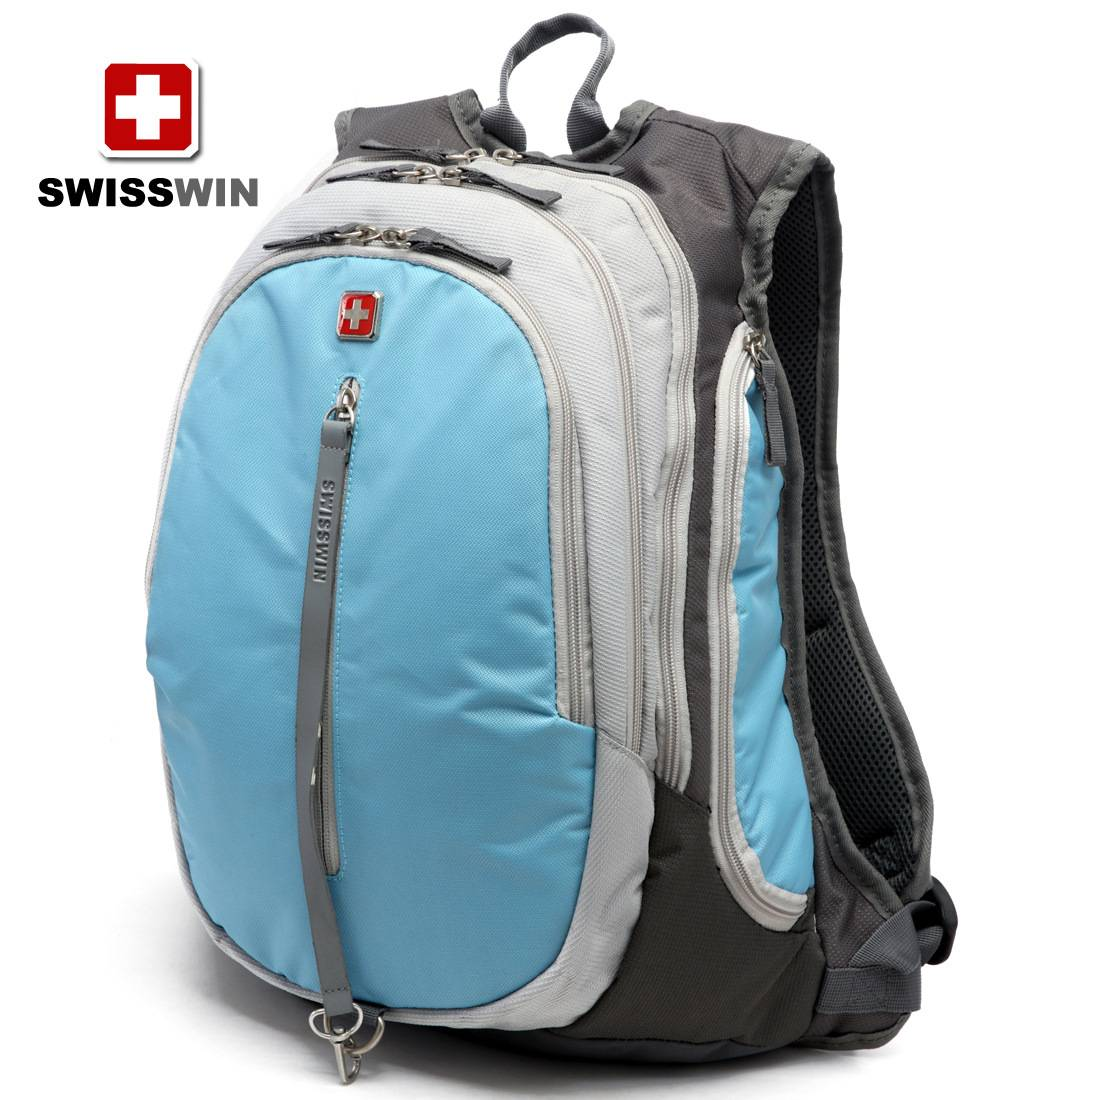 SWISSWIN Army Knife fashion lovers casual shoulder bag computer backpack bags for boys and girls